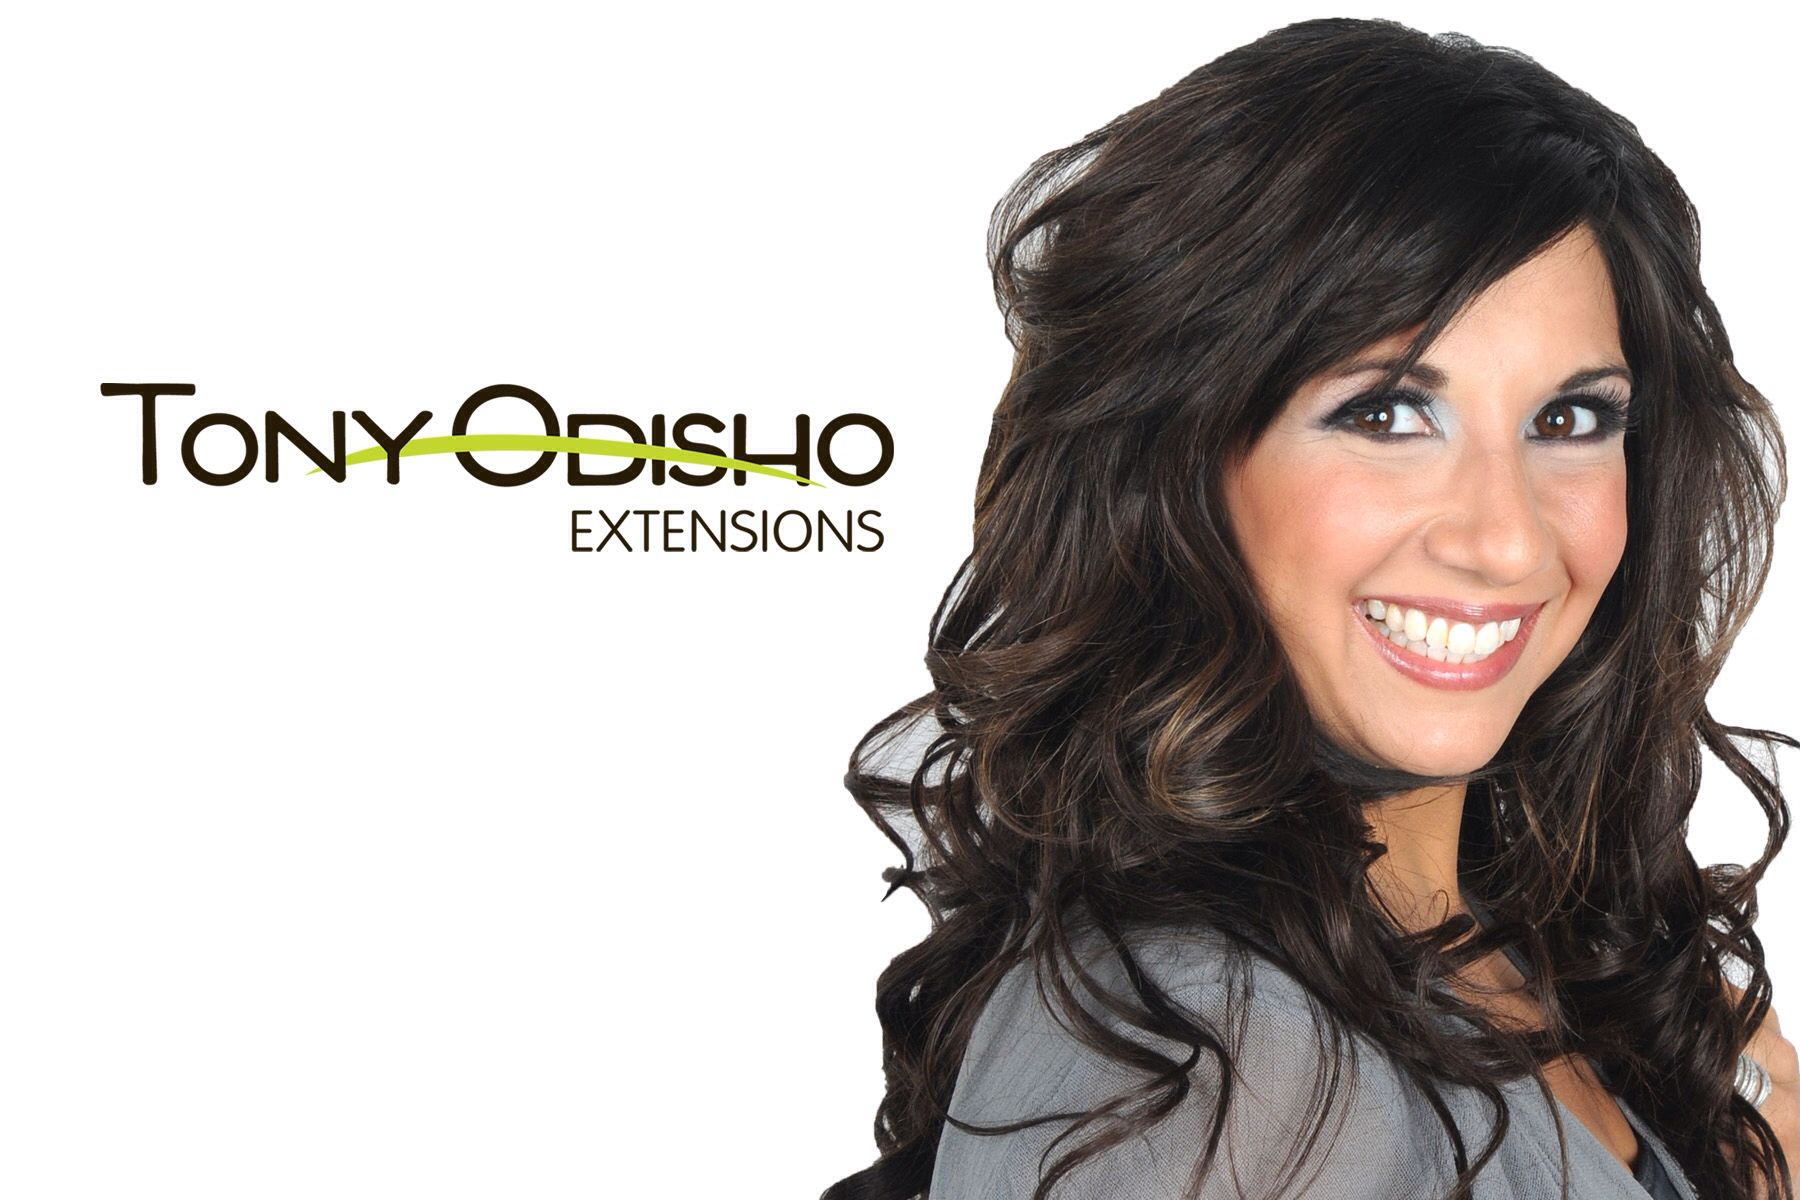 Sorelle Salon Now Offering Tony Odisho Extensions Hair Extensions